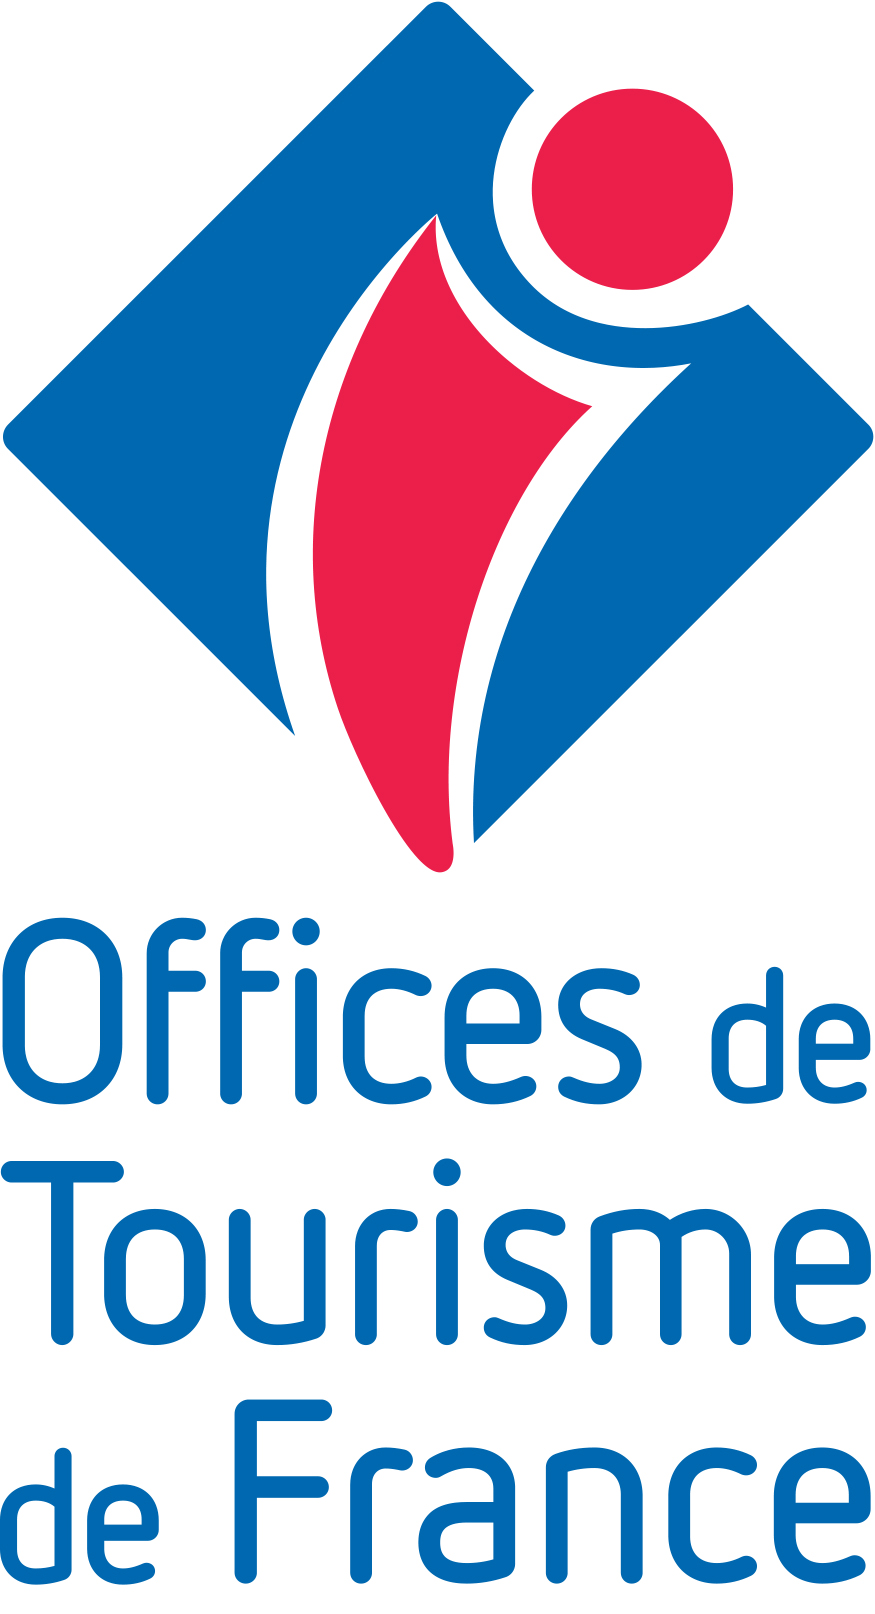 Offices de tourisme de france - Office du tourisme italien paris horaires ...